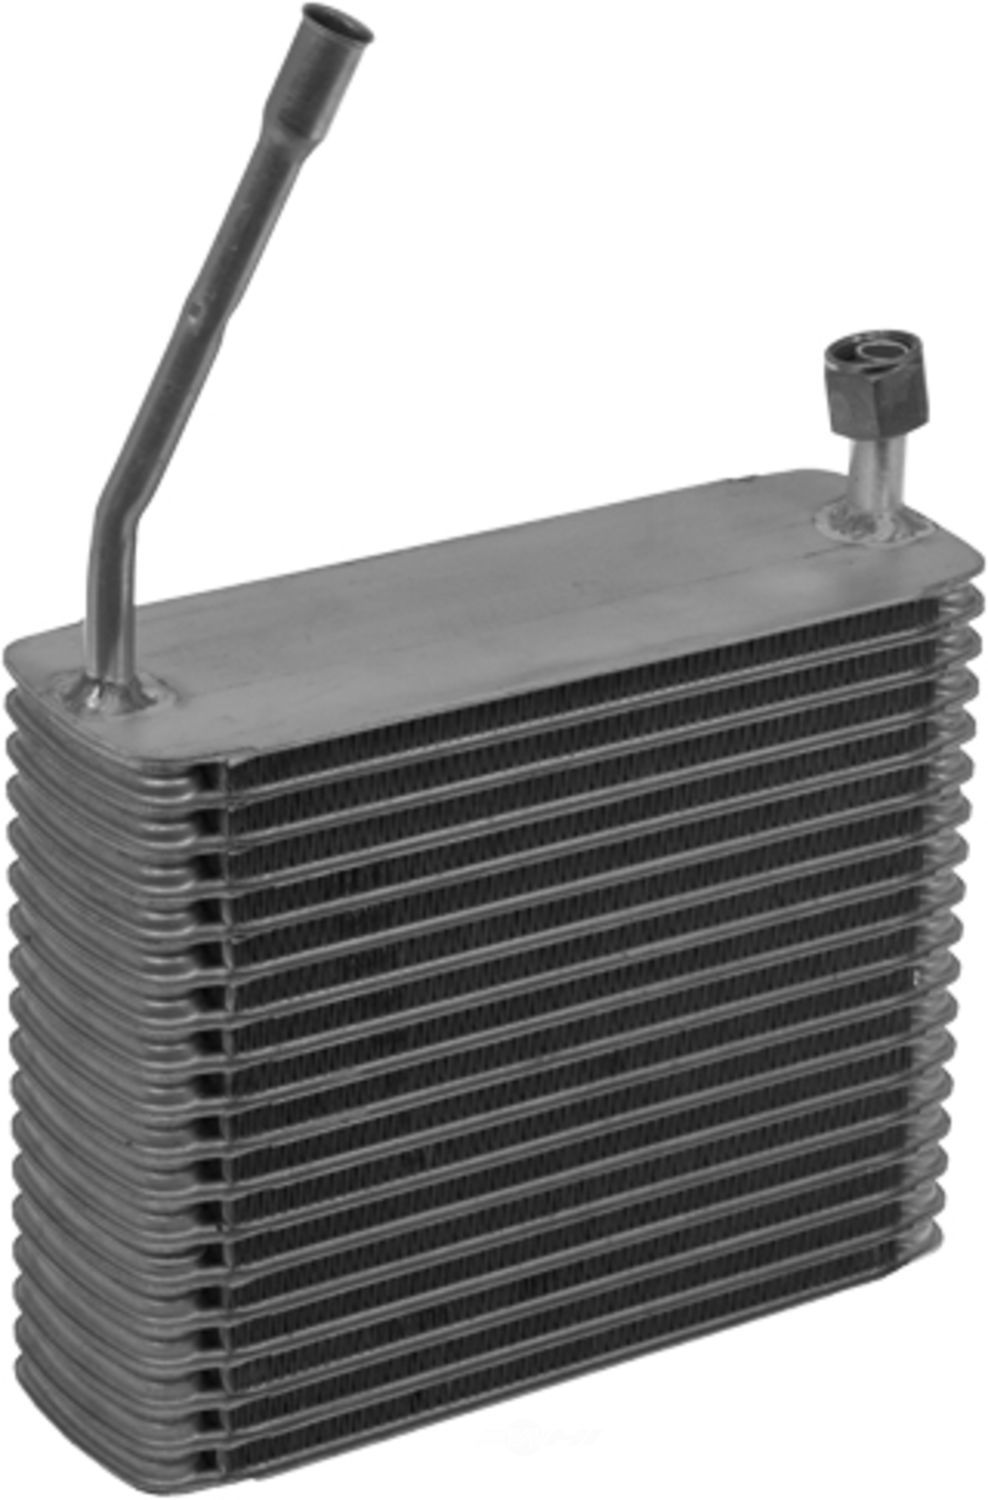 Ford crown victoria ac evaporator core from best value for Century ac motor serial number lookup